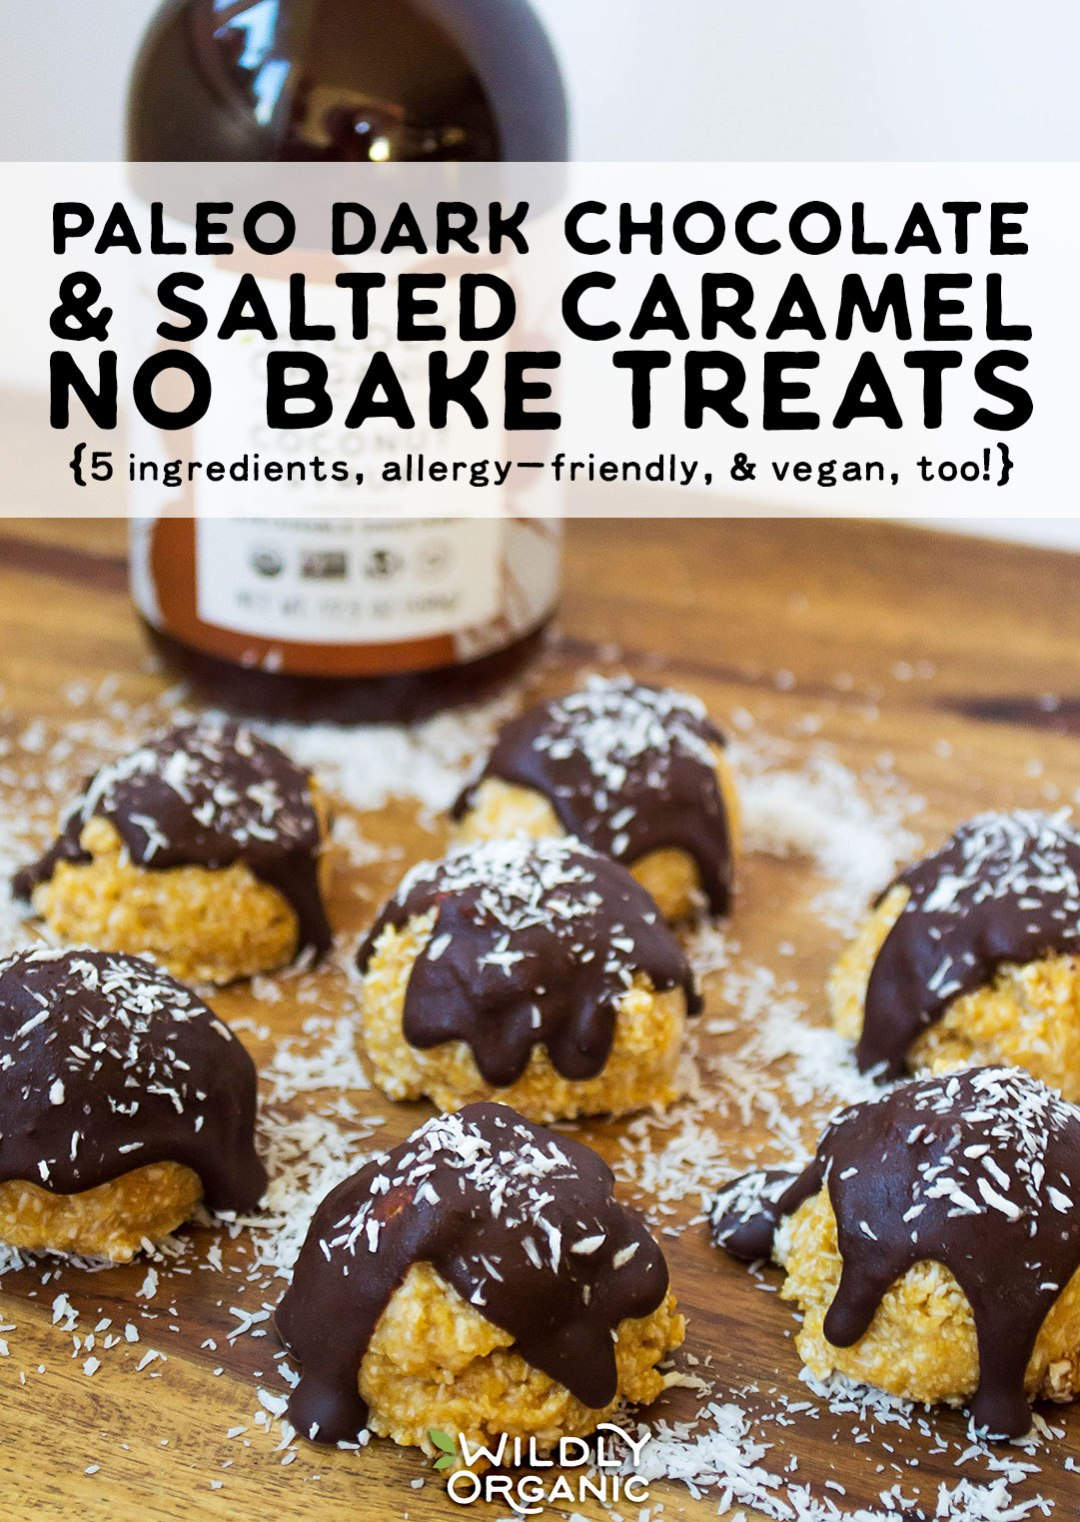 Paleo Dark Chocolate & Salted Caramel No-Bake Treats {5 ingredients, allergy-friendly, & vegan, too!} With just 5 healthy and delicious ingredients, how can you go wrong with these Paleo Salted Caramel & Dark Chocolate No-Bake Treats? They're nut-free, dairy-free, egg-free, peanut-free, soy-free, gluten-free, grain-free, and even sugar-free! These no-bake treats are perfect healthy summer snacking for everyone!